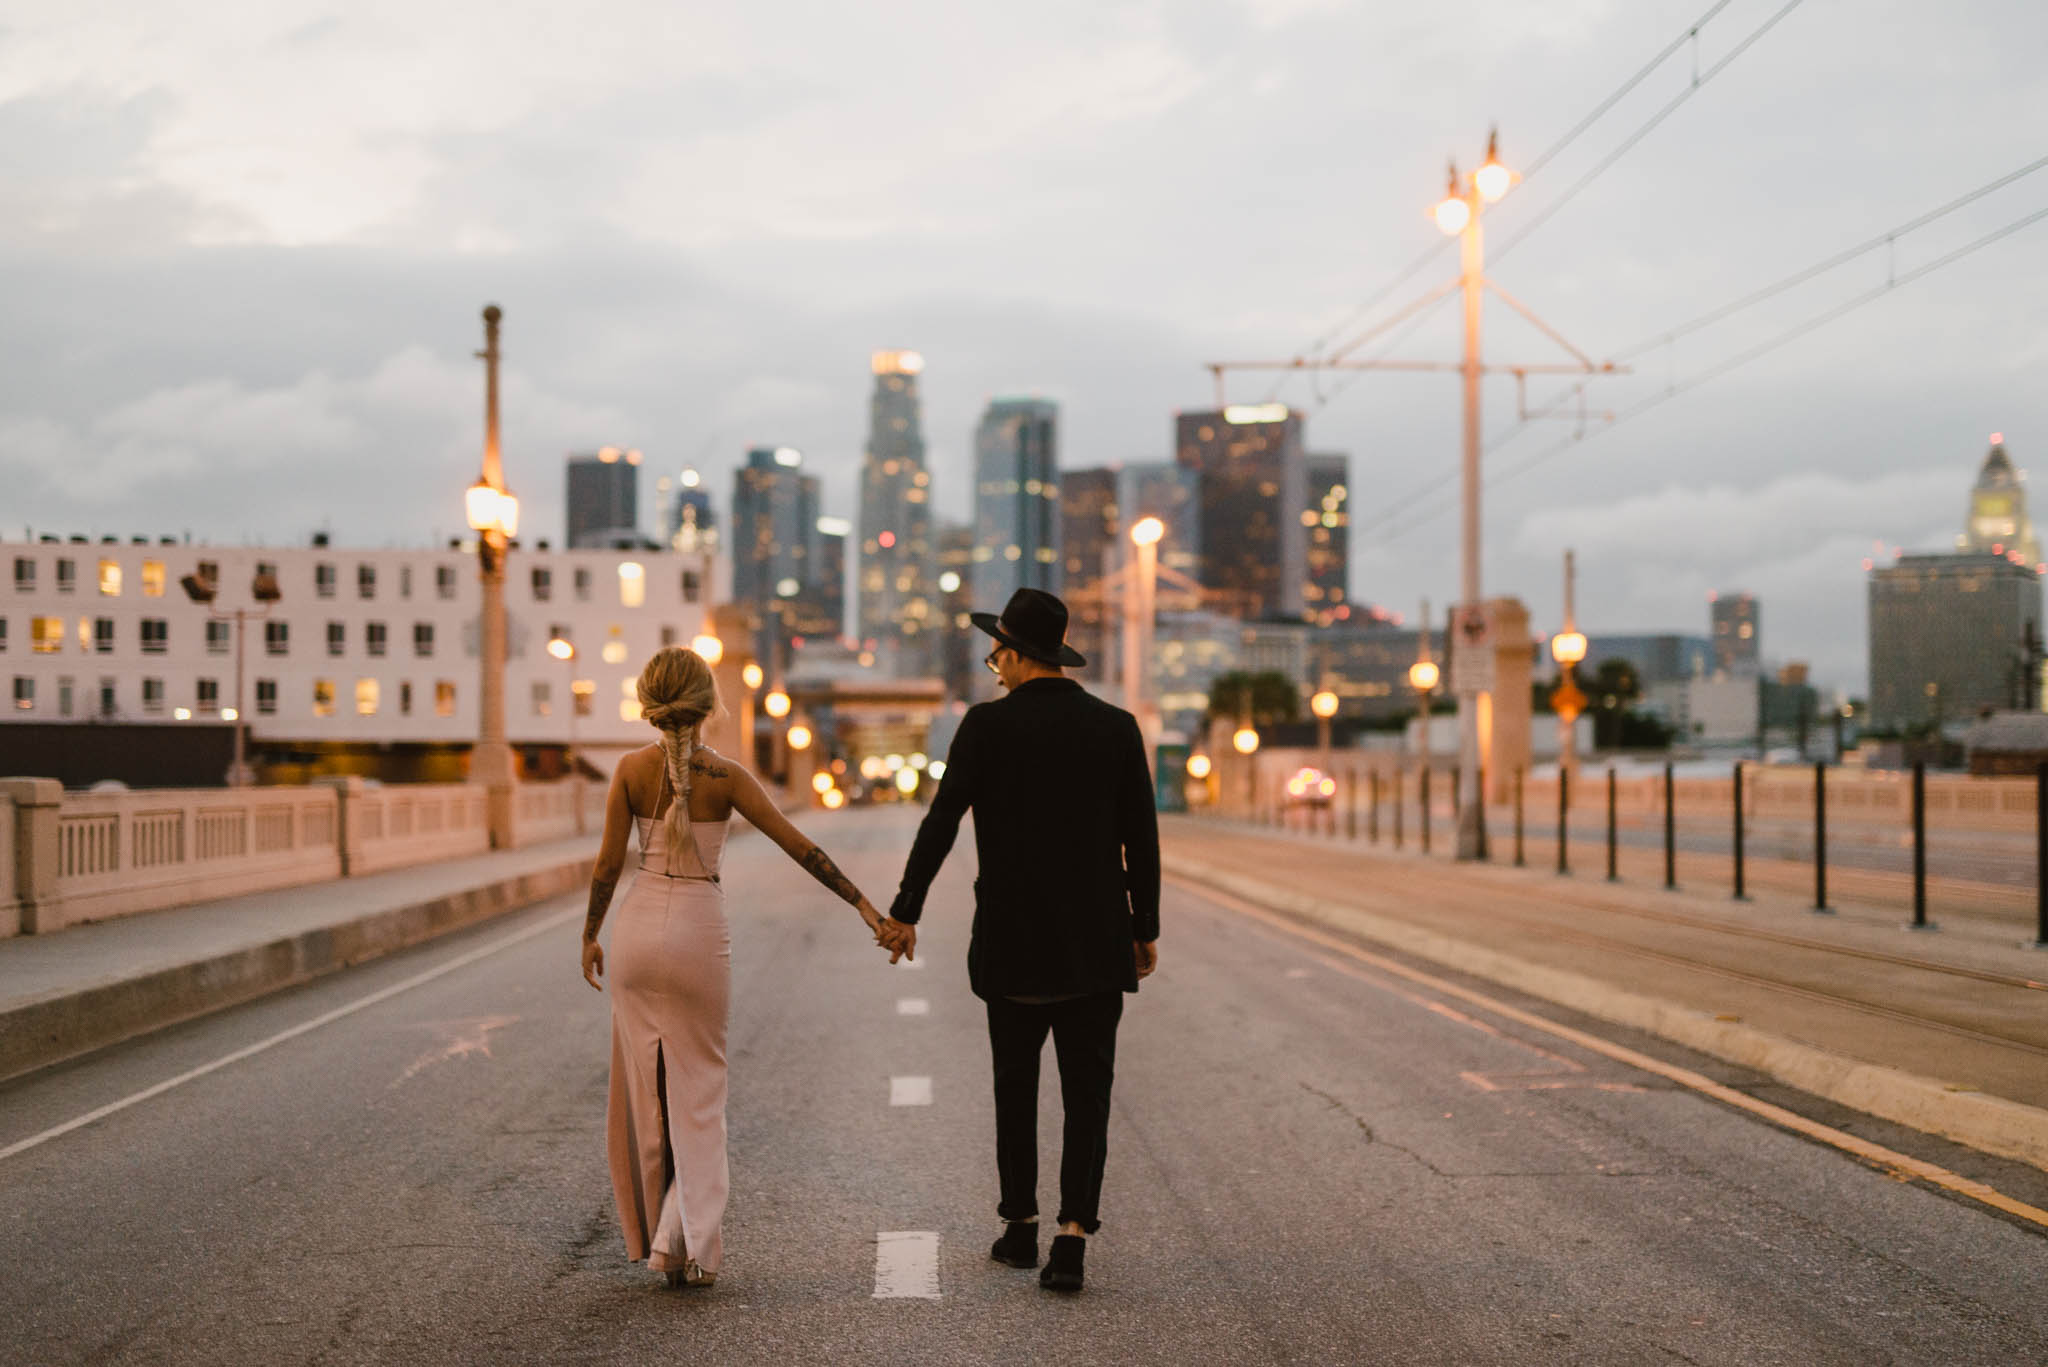 ©Isaiah-&-Taylor-Photography---Downtown-Los-Angeles-Skyline-Engagement-040.jpg